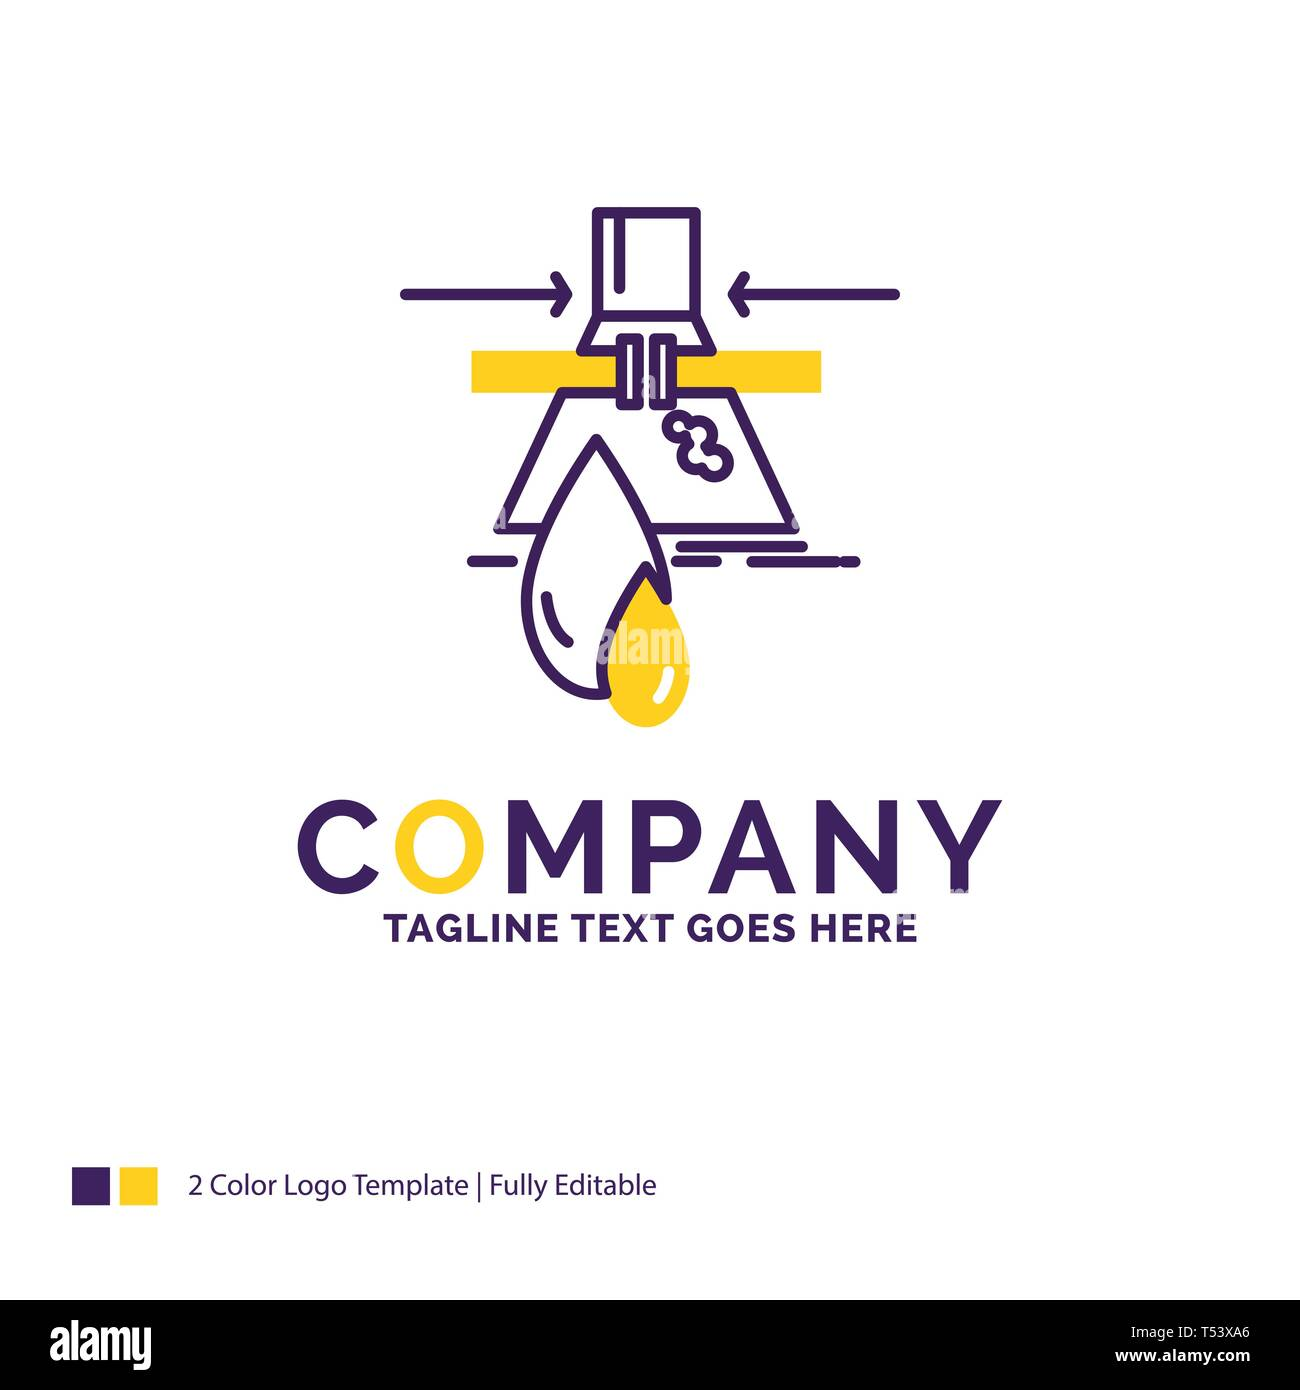 Company Name Logo Design For Chemical, Leak, Detection, Factory